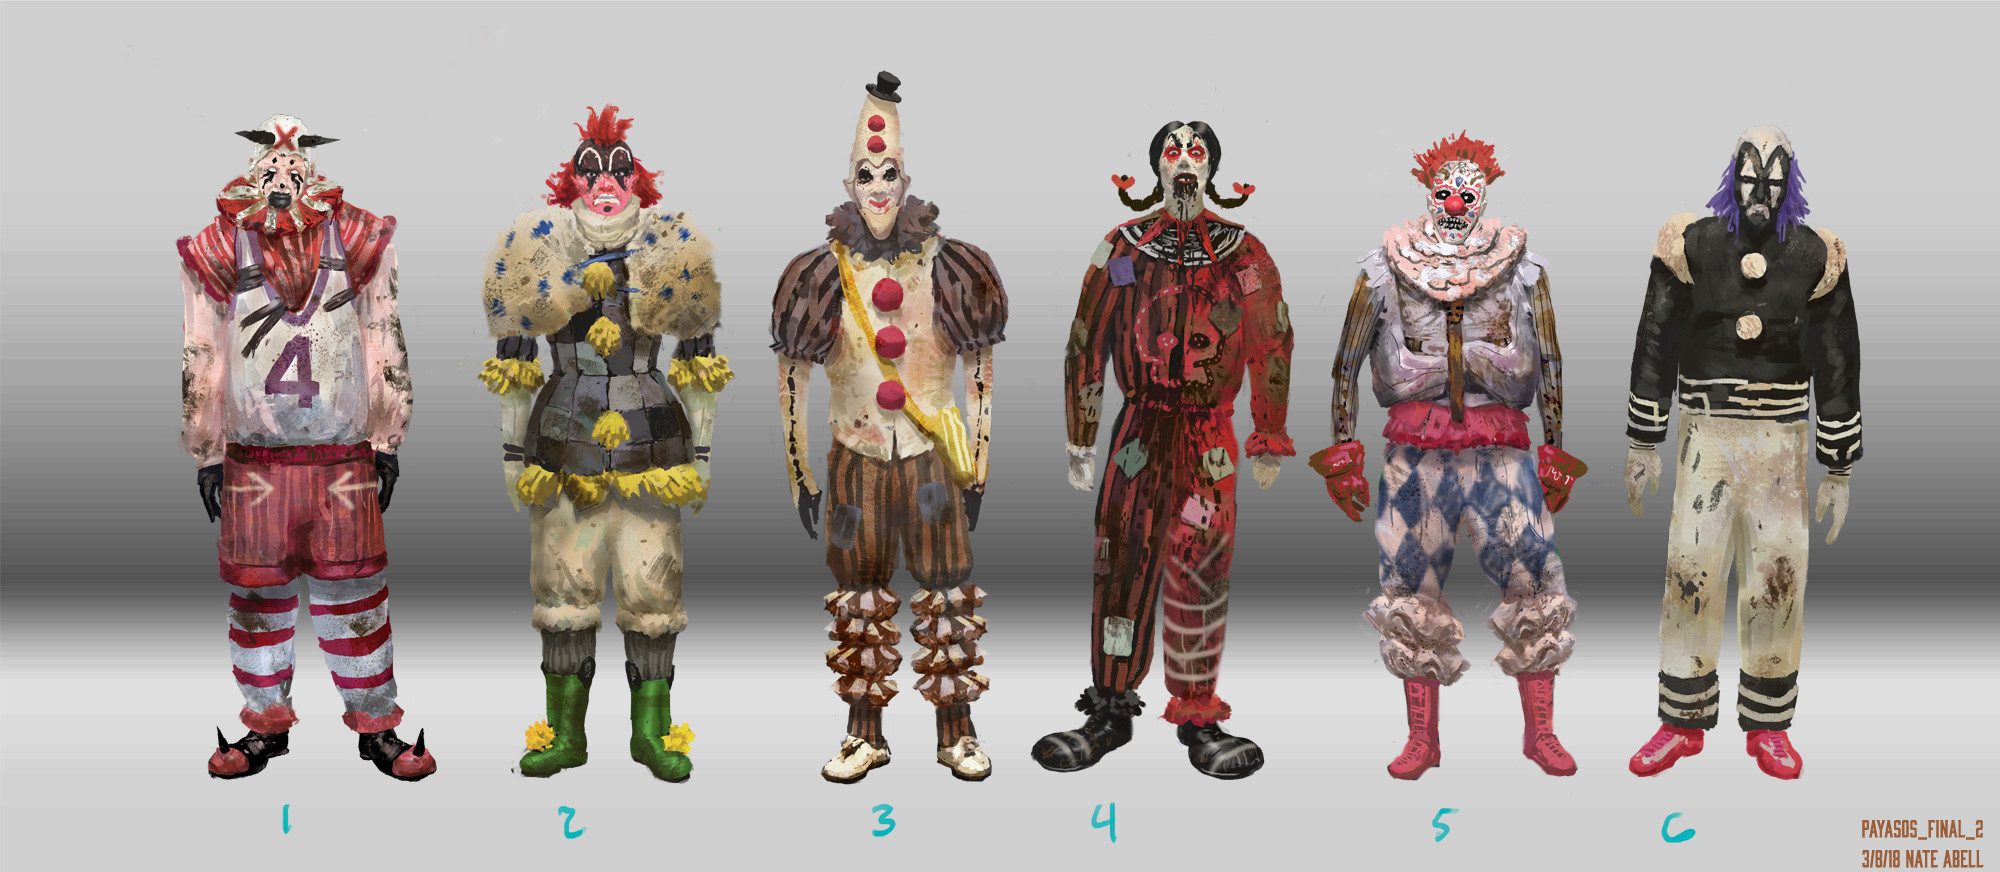 Clown Gang.  They ran with 3.  Inspired by some rave clowns I saw at a con in 2007.